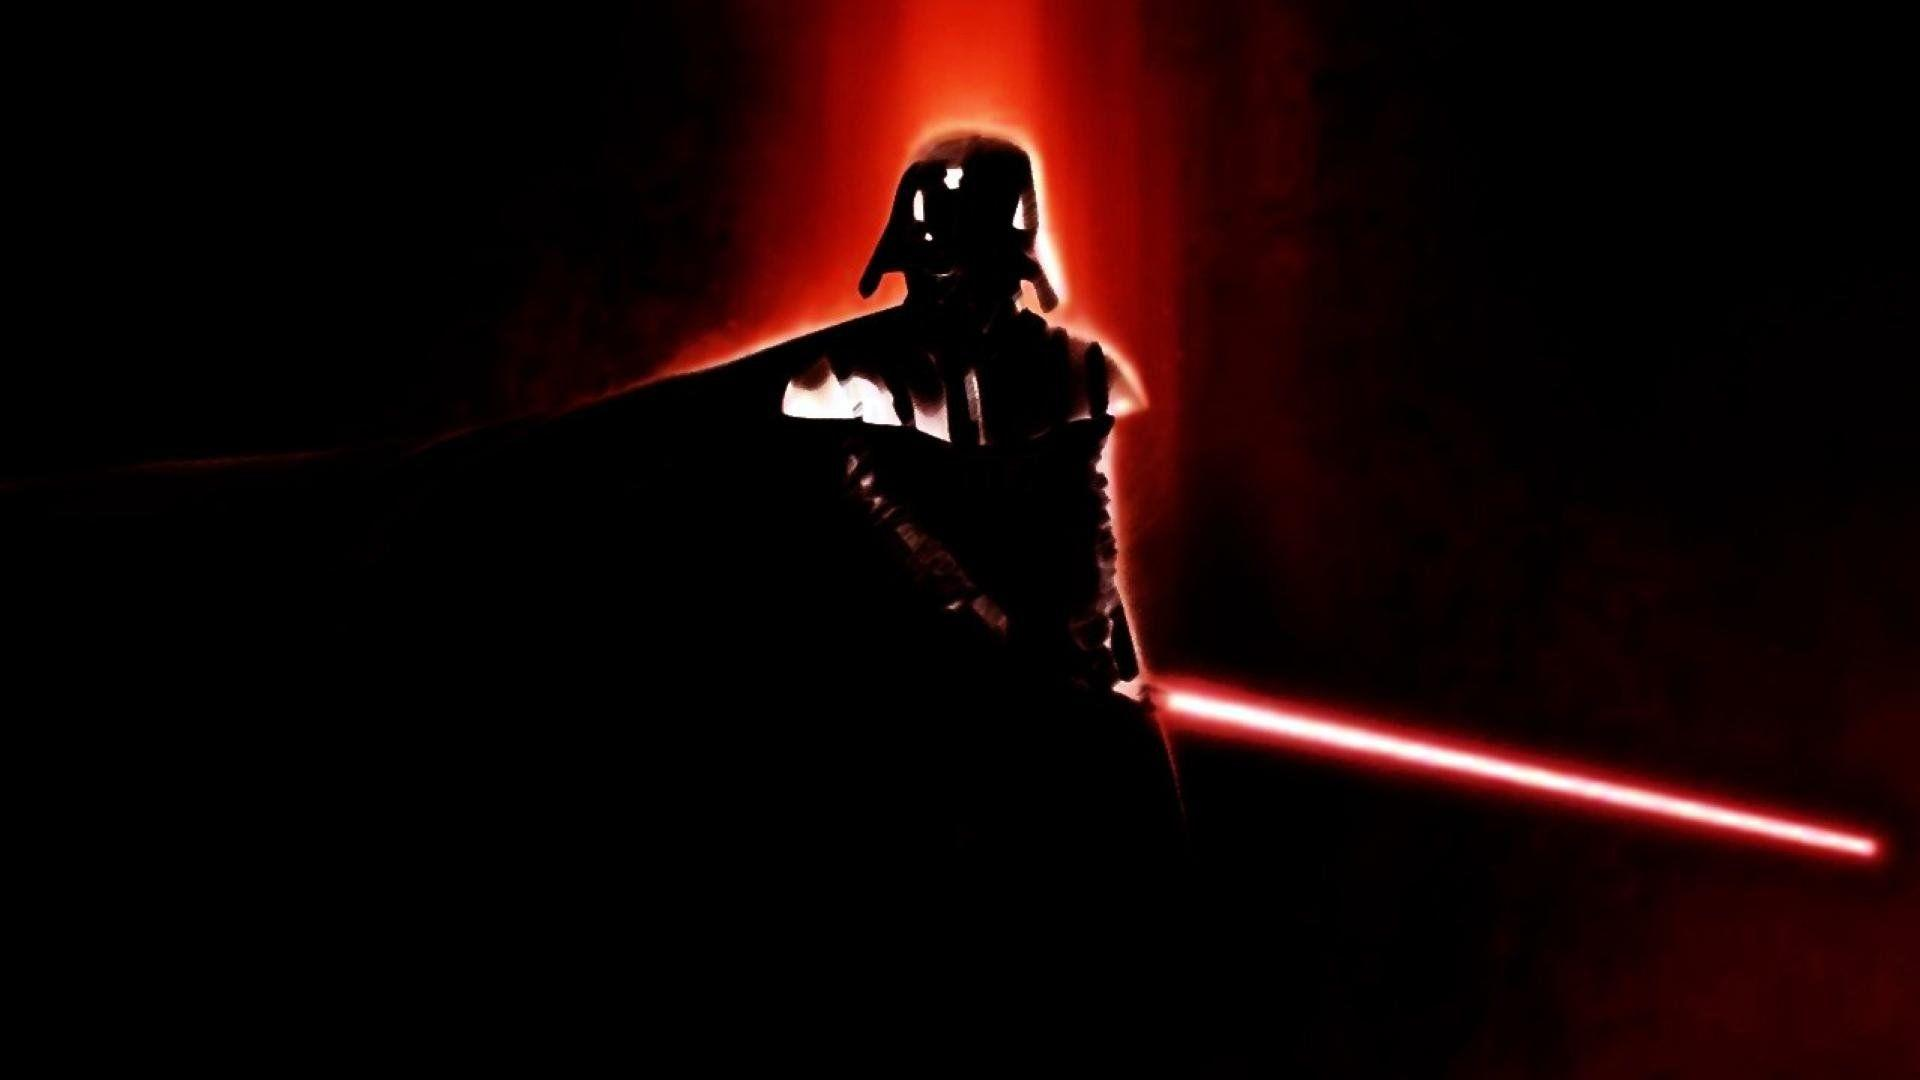 Darth Vader Red Wallpapers Wallpaper Cave